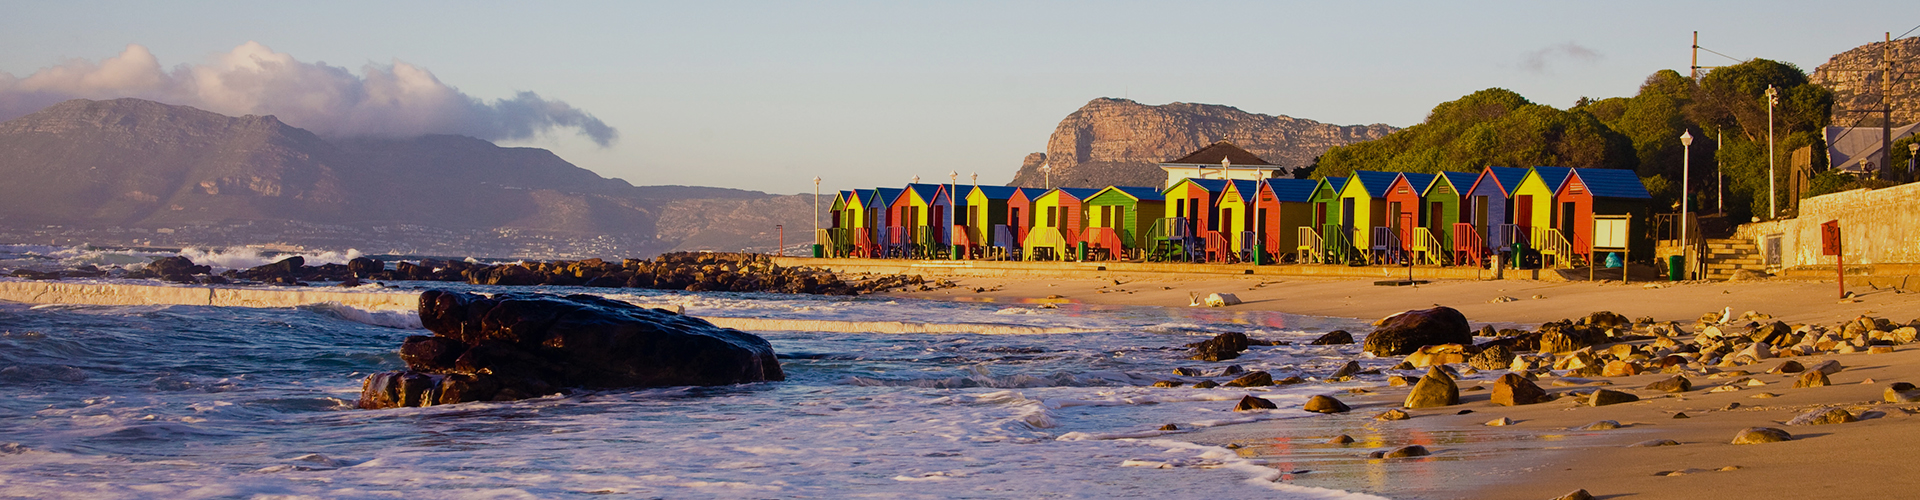 Landmark photograph of South Africa